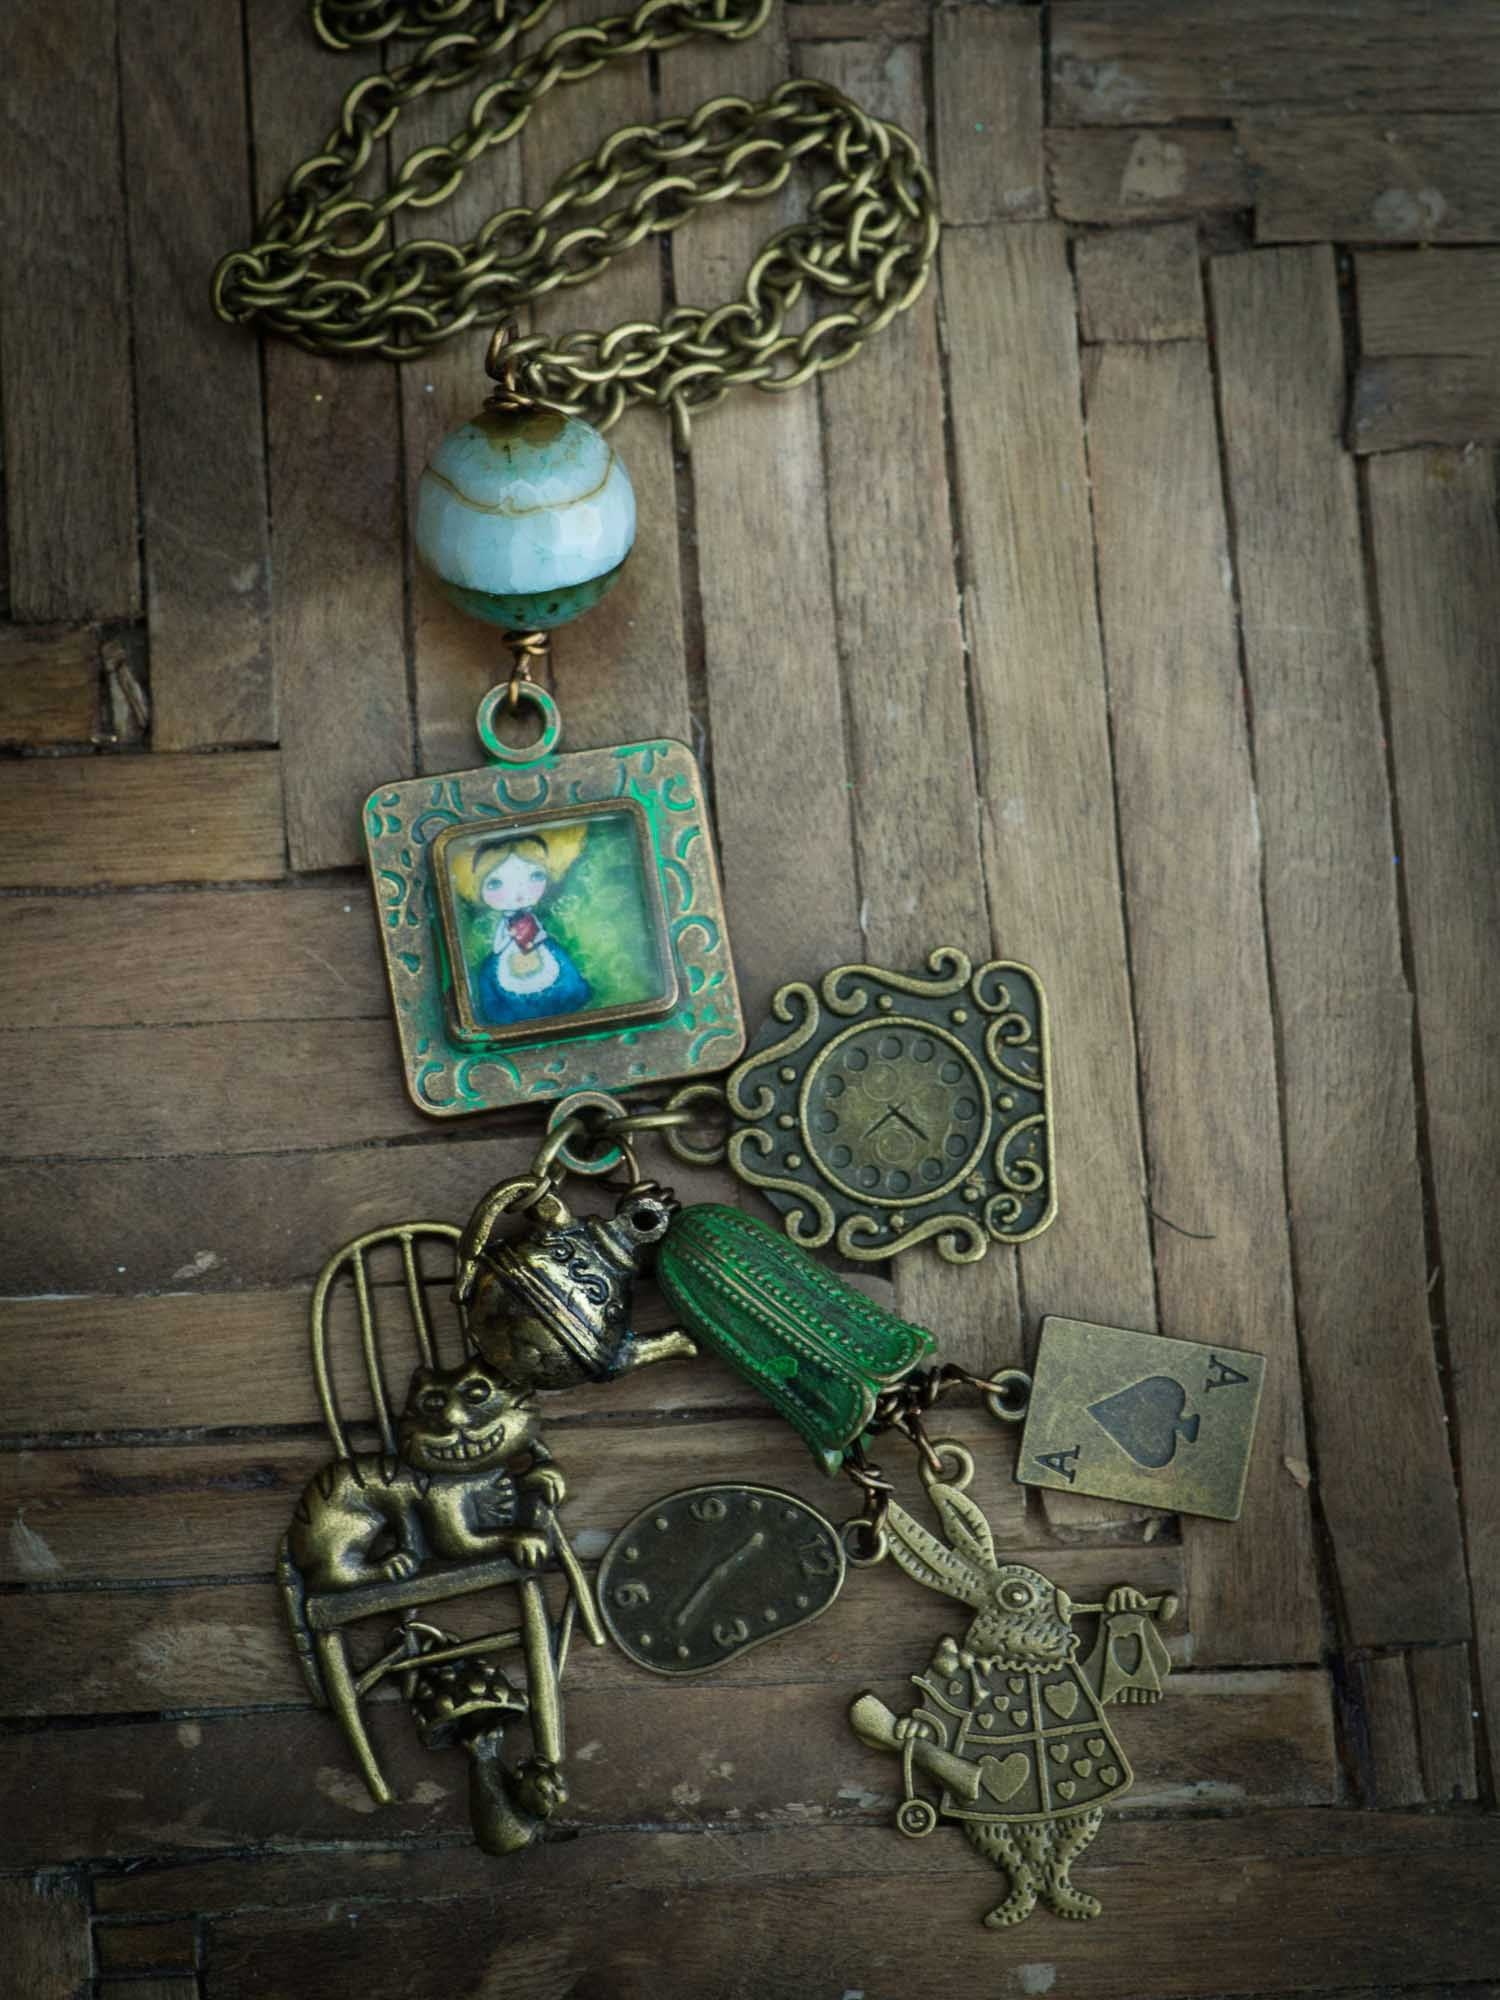 Danita loves the aged and worn look of old things, and she loves to capture that vintage feel on her unique original handmade jewelry.